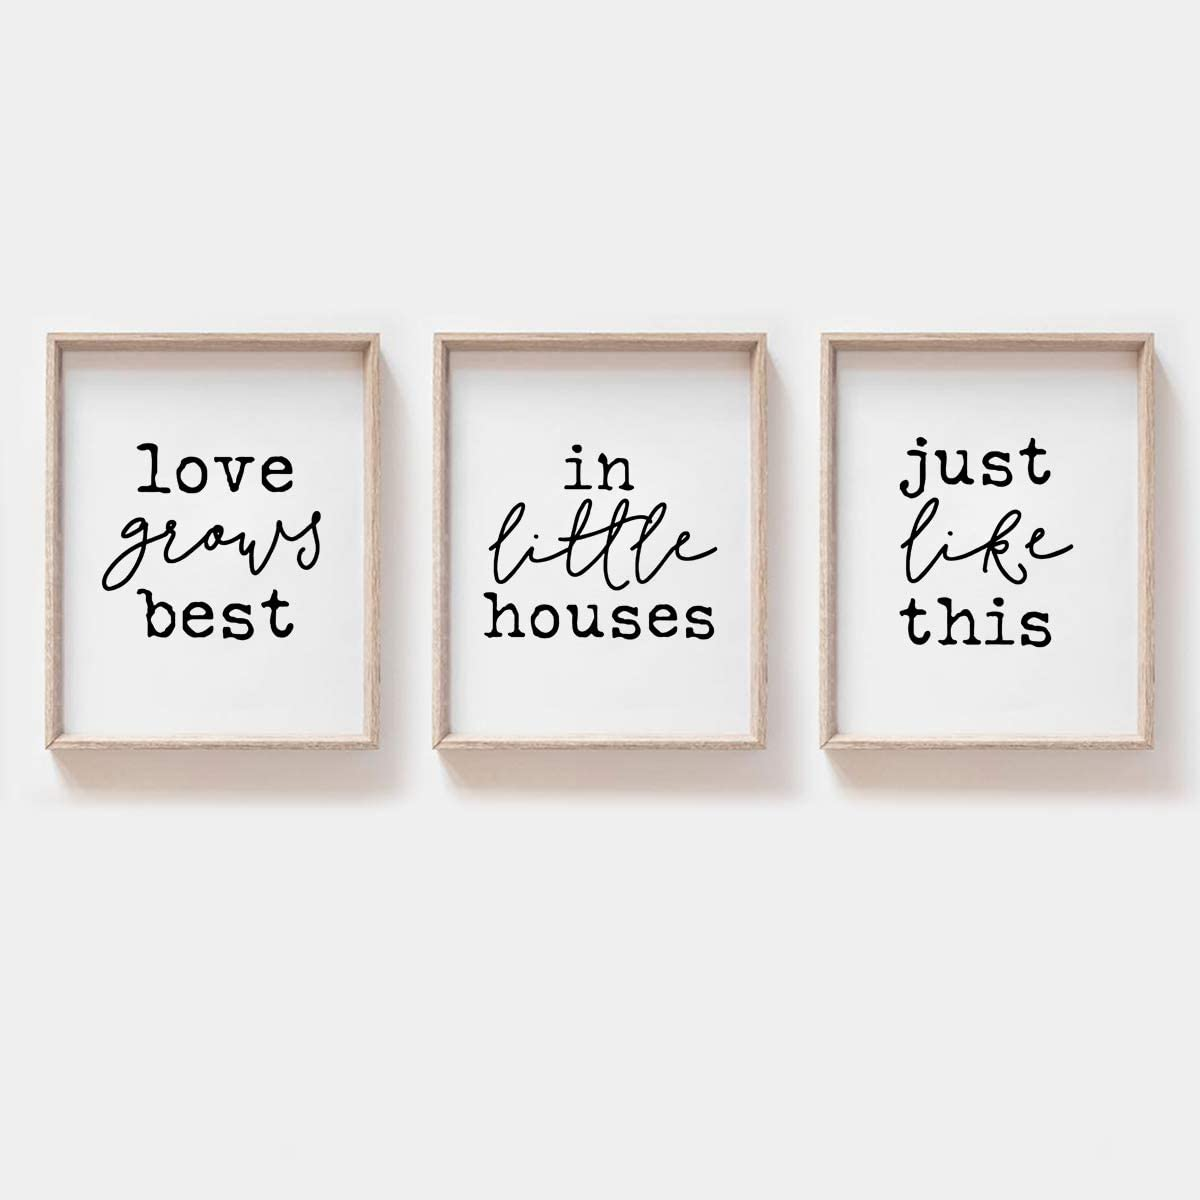 MoharWall Bedroom Wall Prints Love Quotes Wall Art, Love Grows Best in Little Houses Just Like This, House Living Room Décor